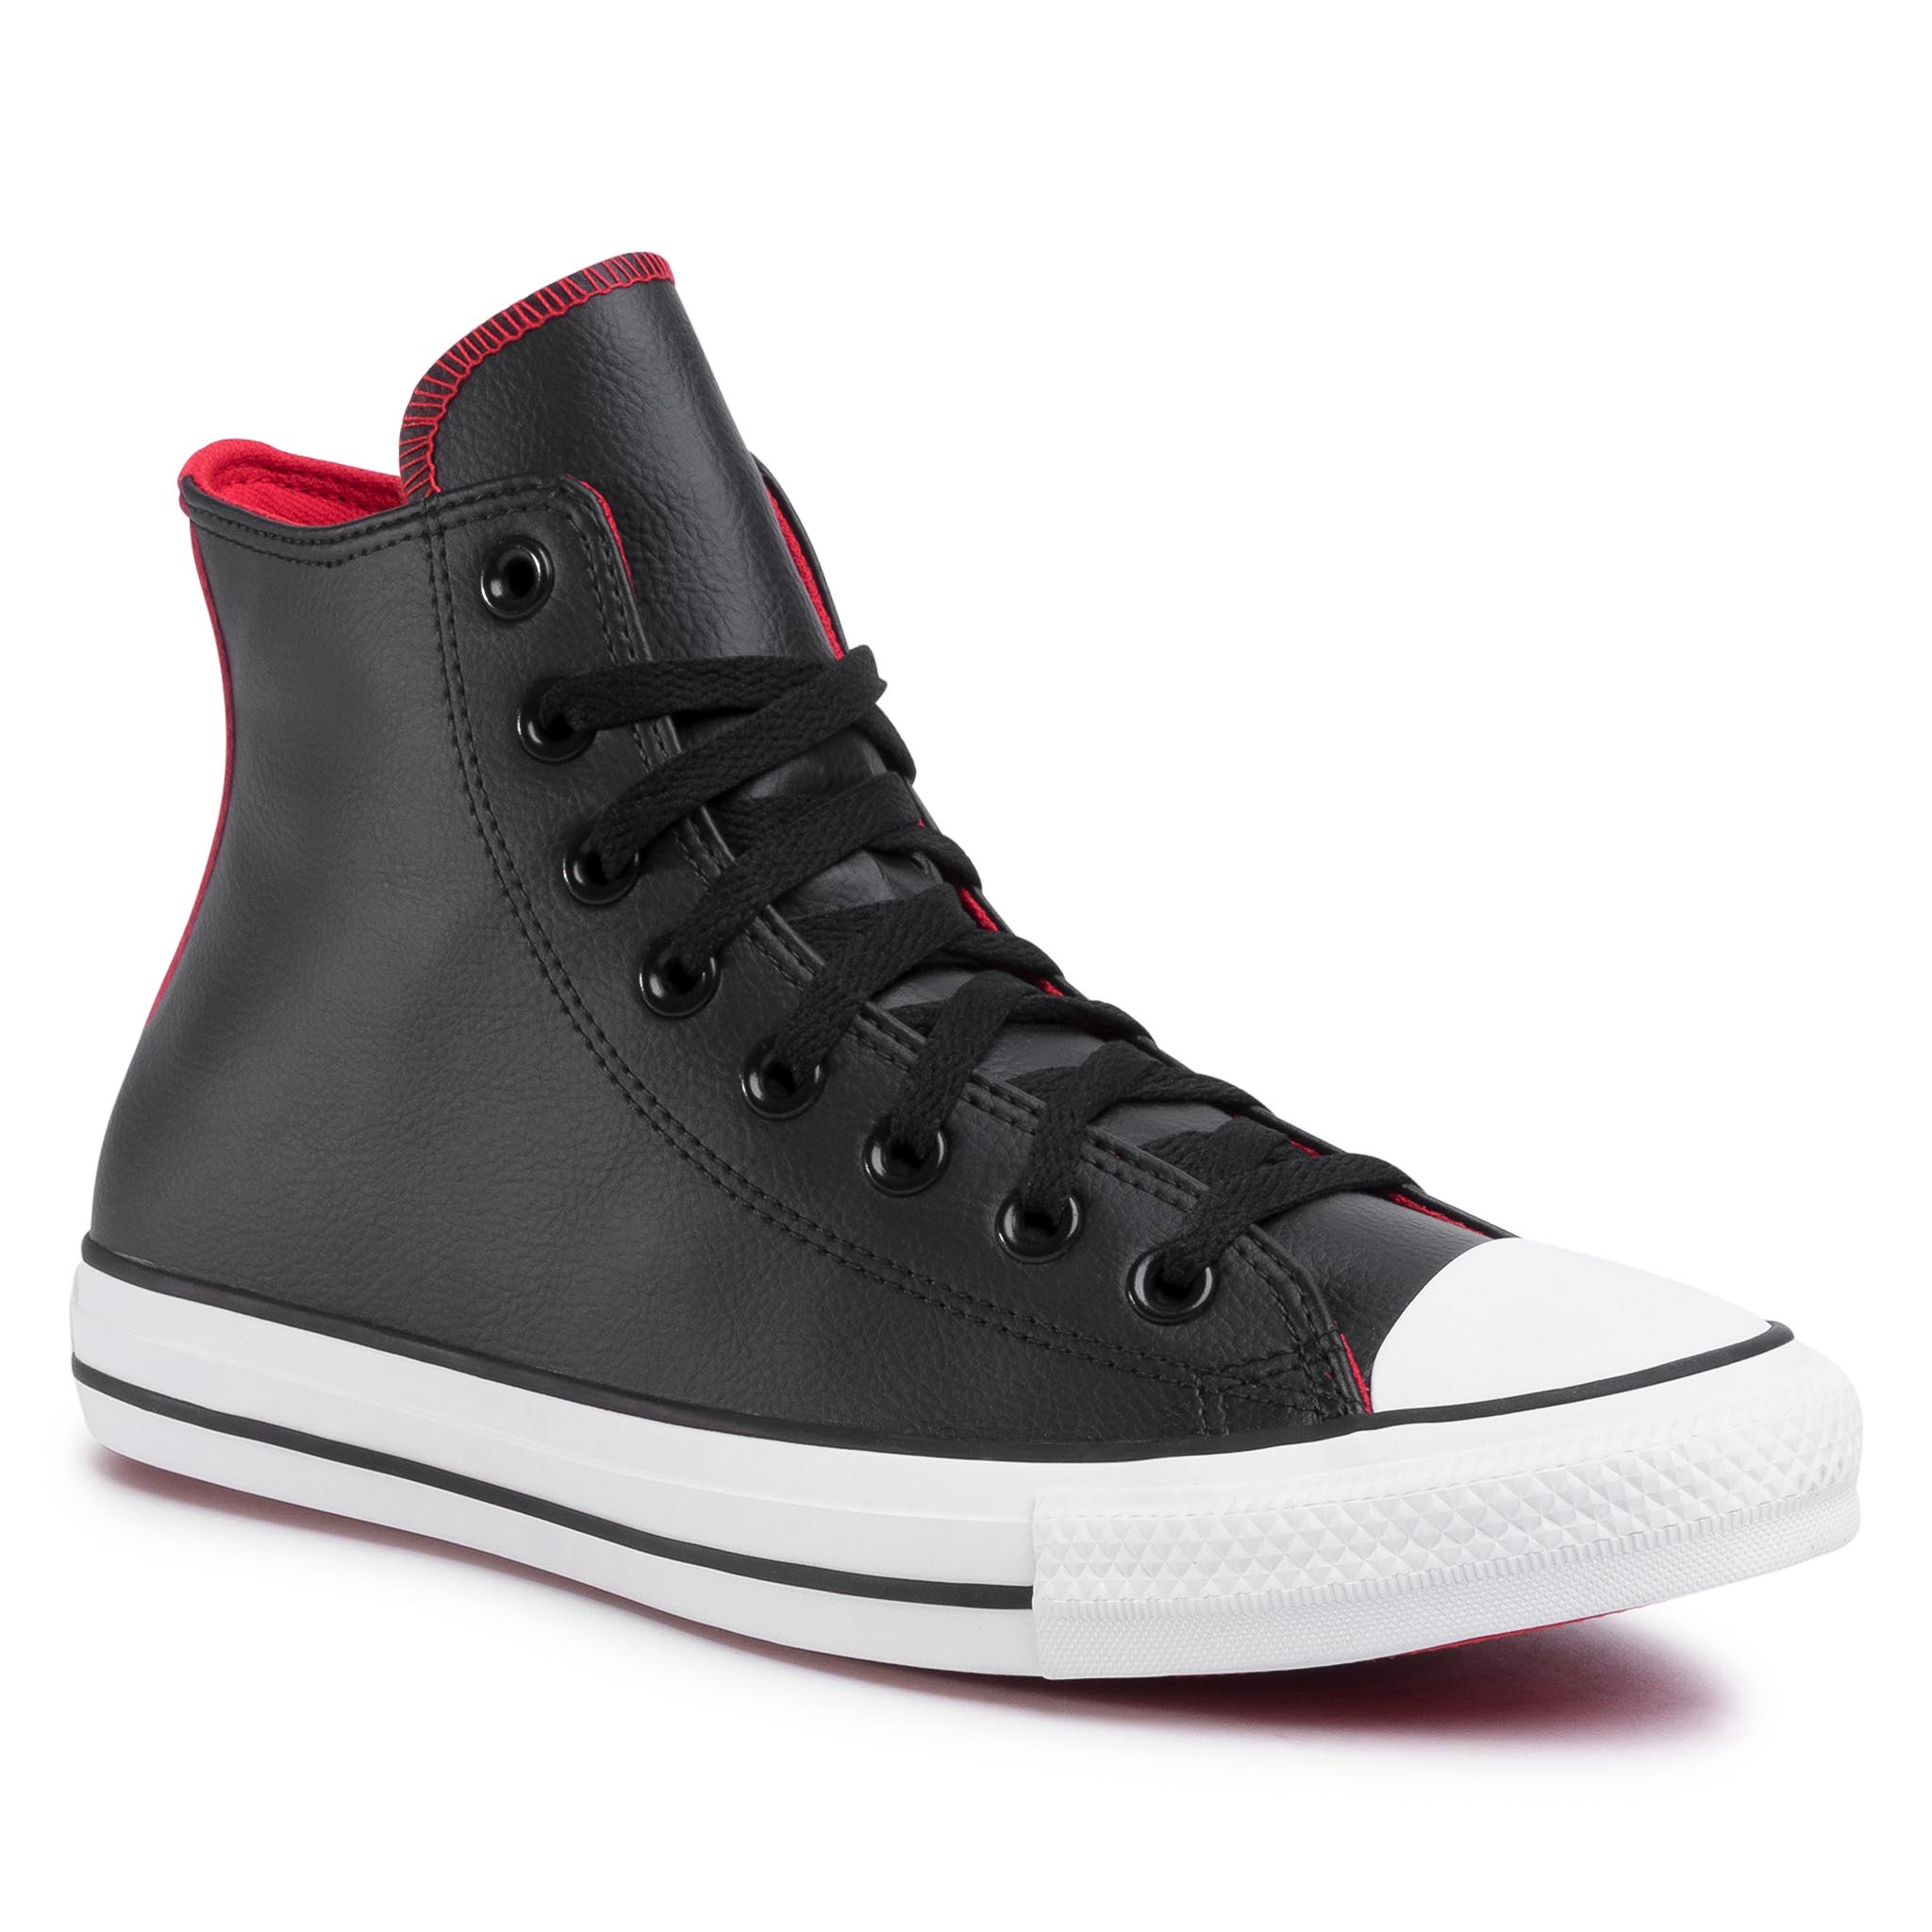 Teniși Converse - Ctas Hi 167119c Black/University Red/White imagine epantofi.ro 2021